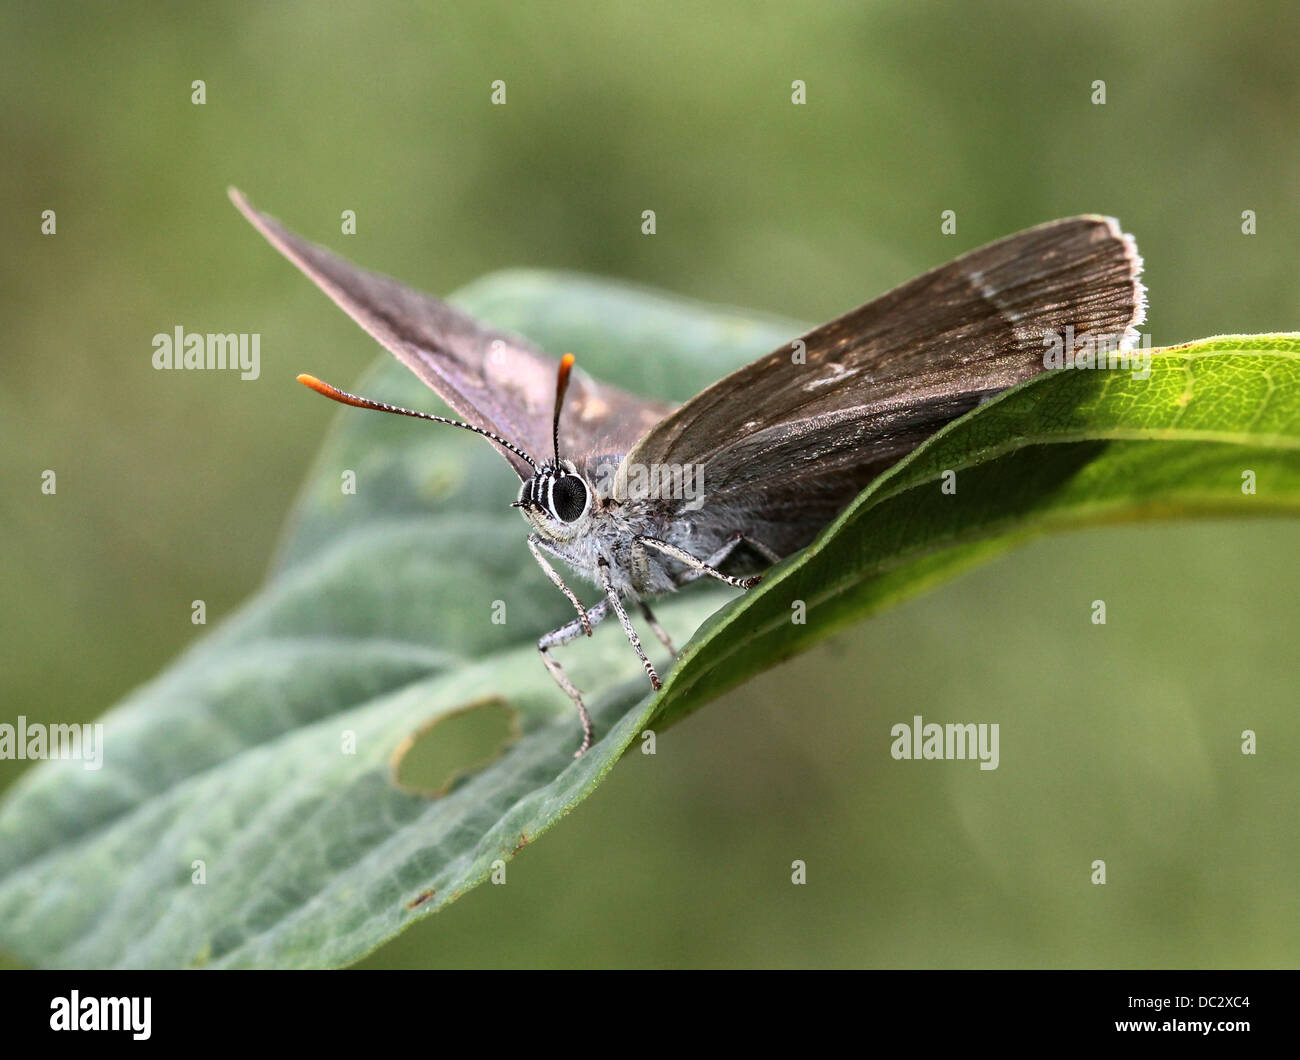 Female Purple Hairstreak Butterfly (Favonius quercus) posing on a leaf with wings opened - Stock Image